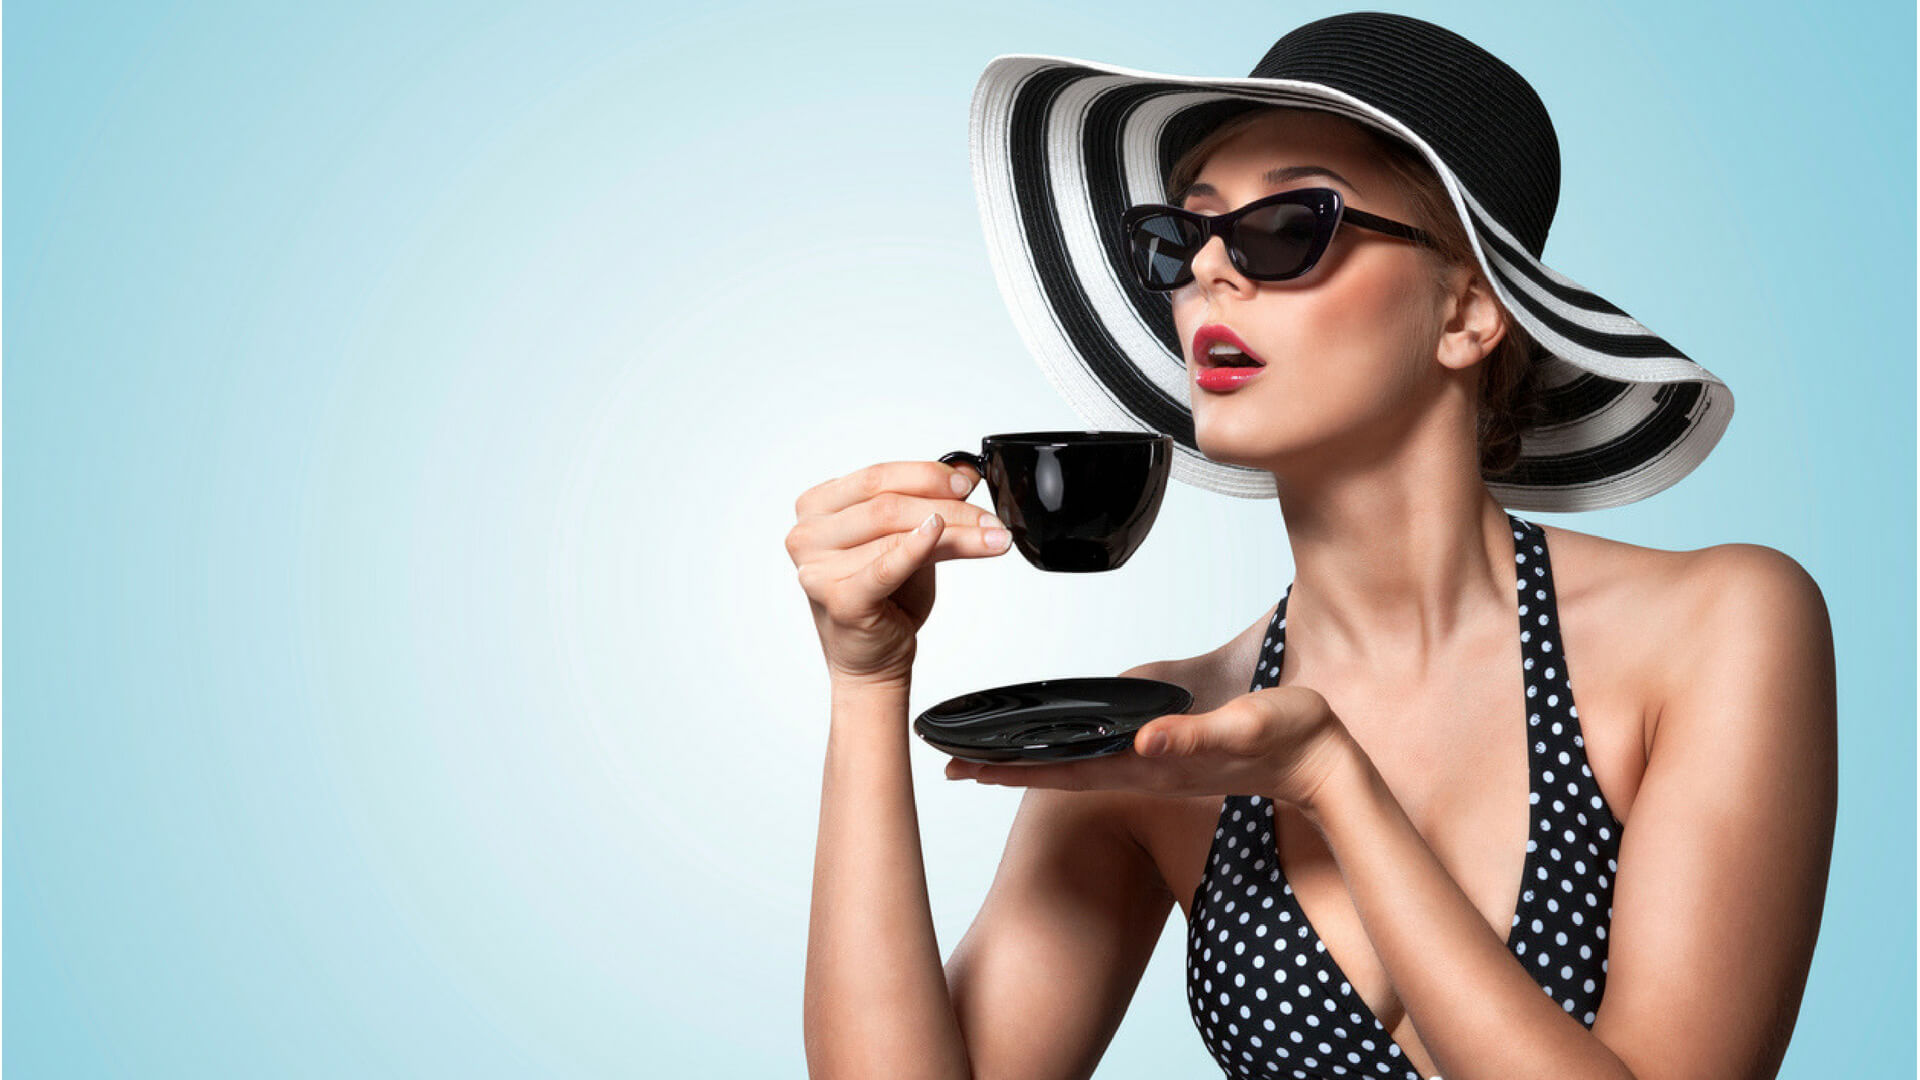 Will caffeinated drinks help suppress my appetite?